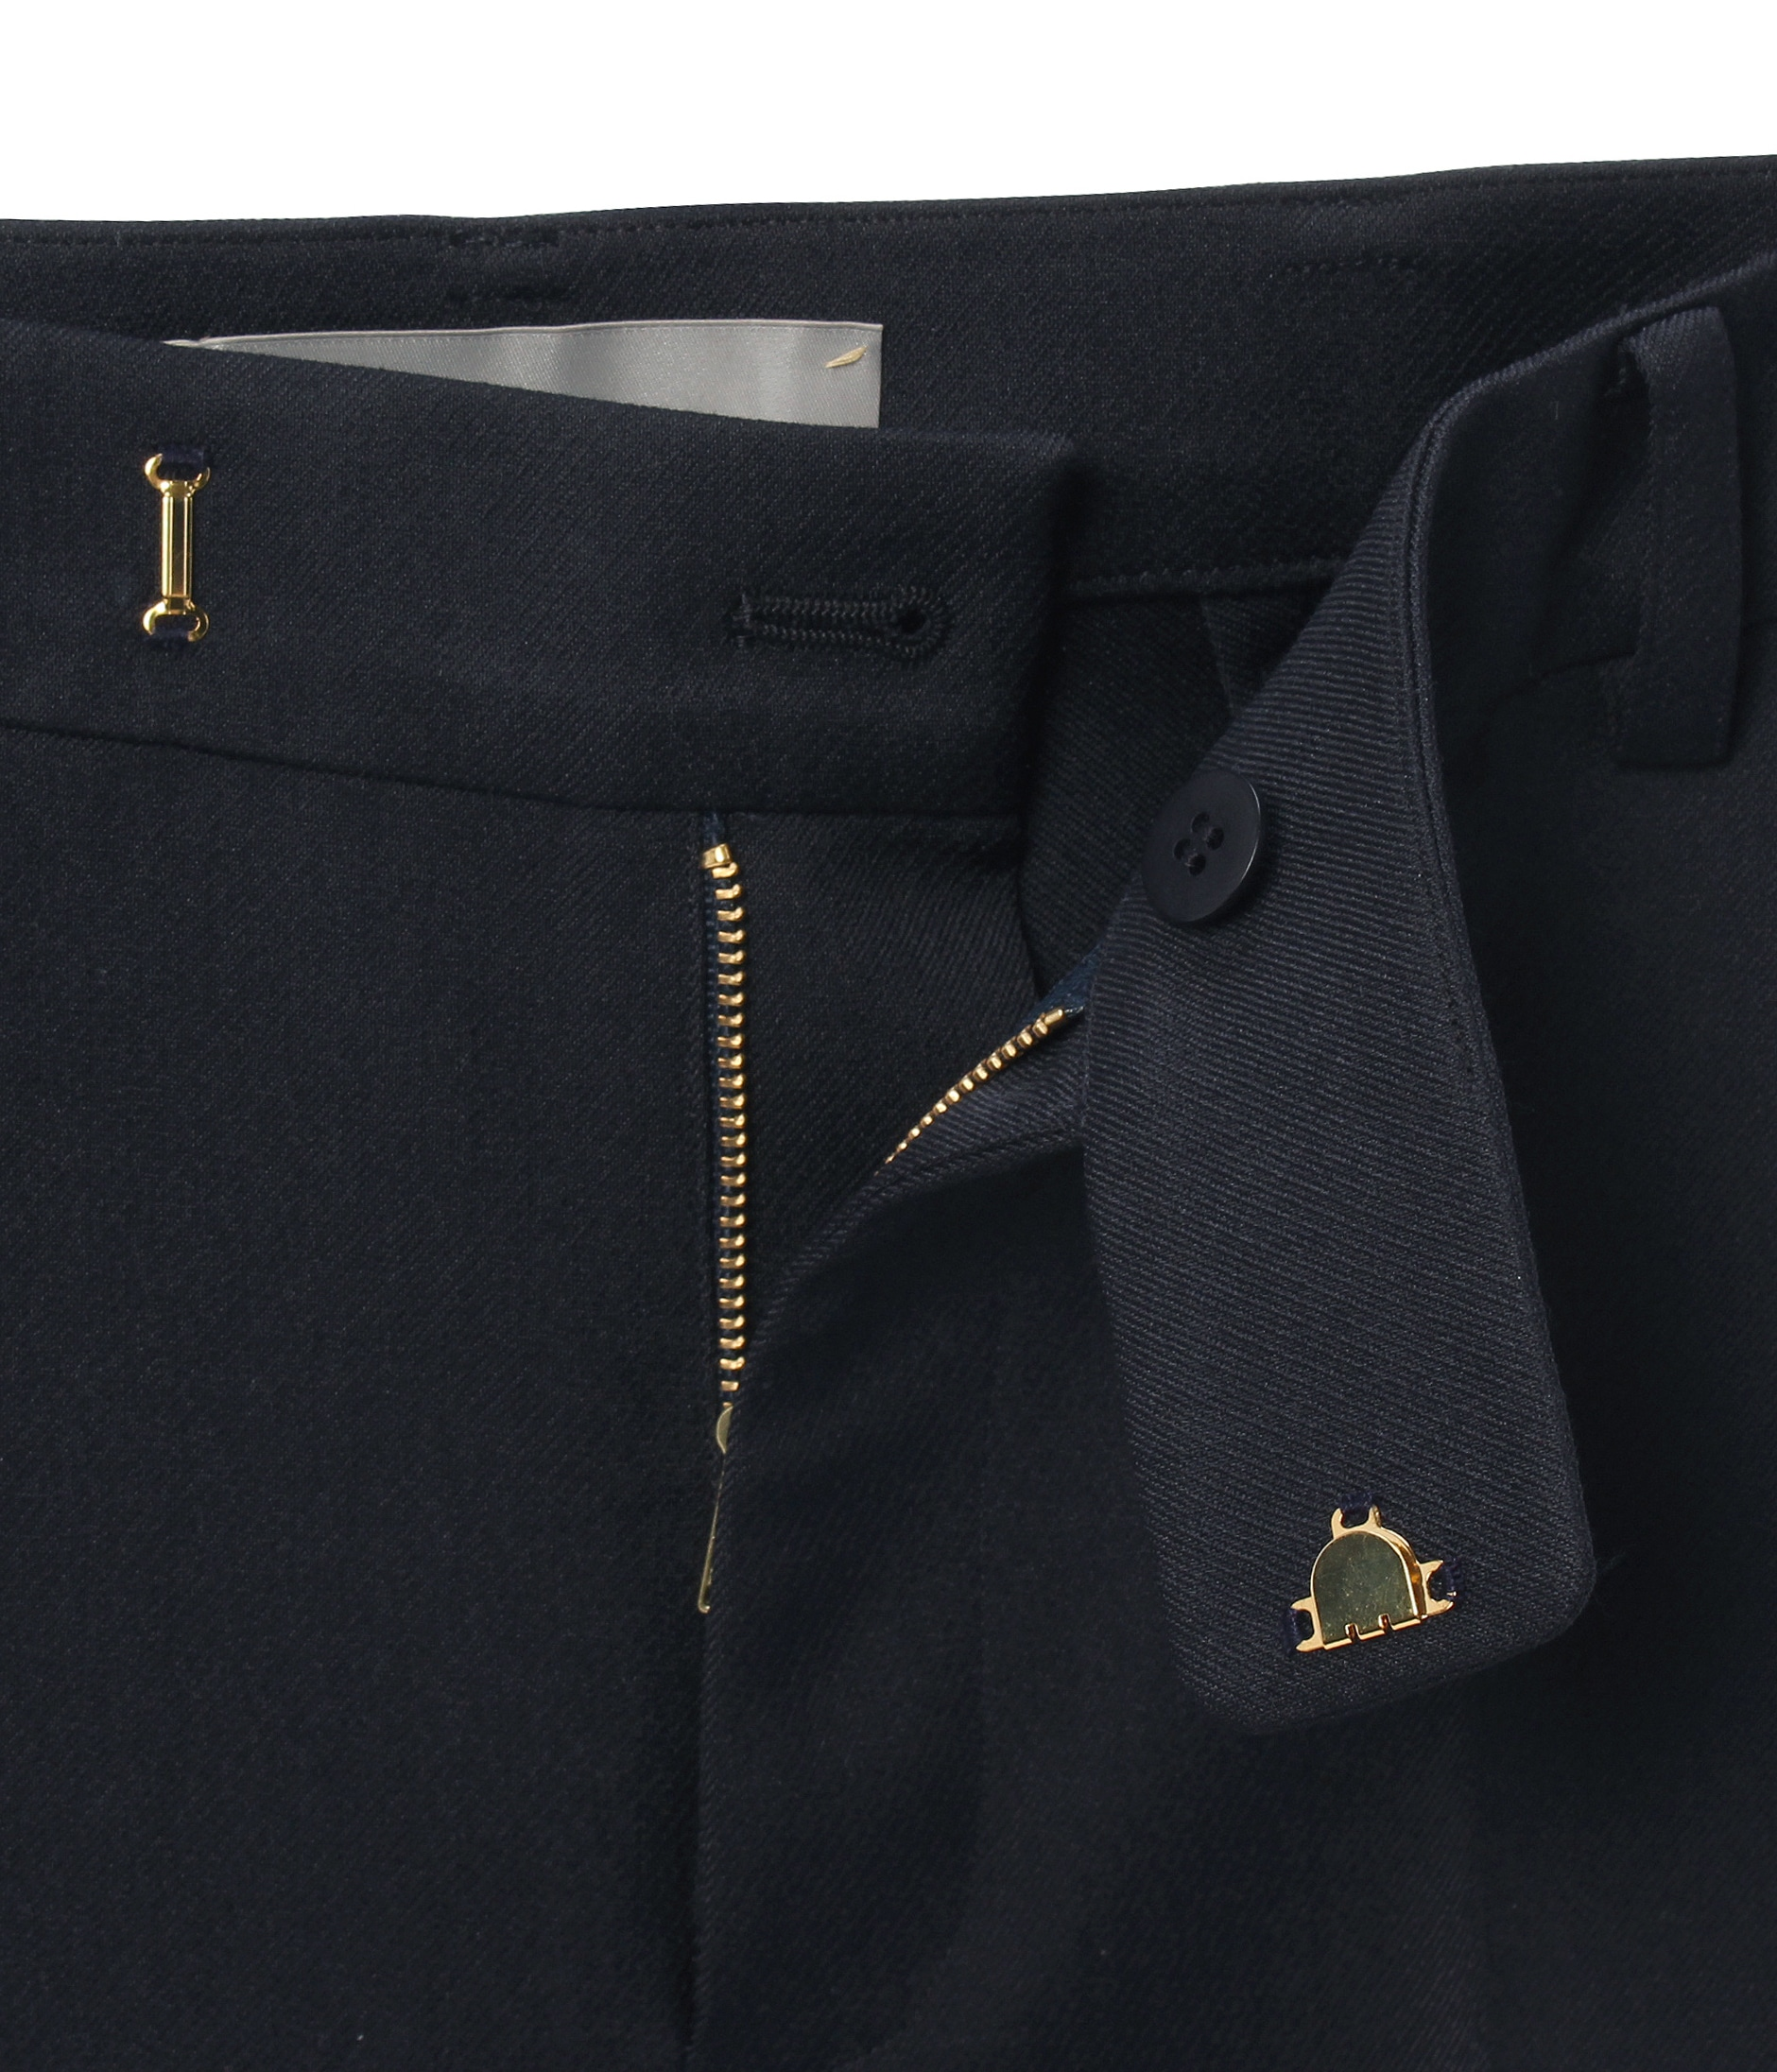 IONA TROUSERS 詳細画像 NAVY 5